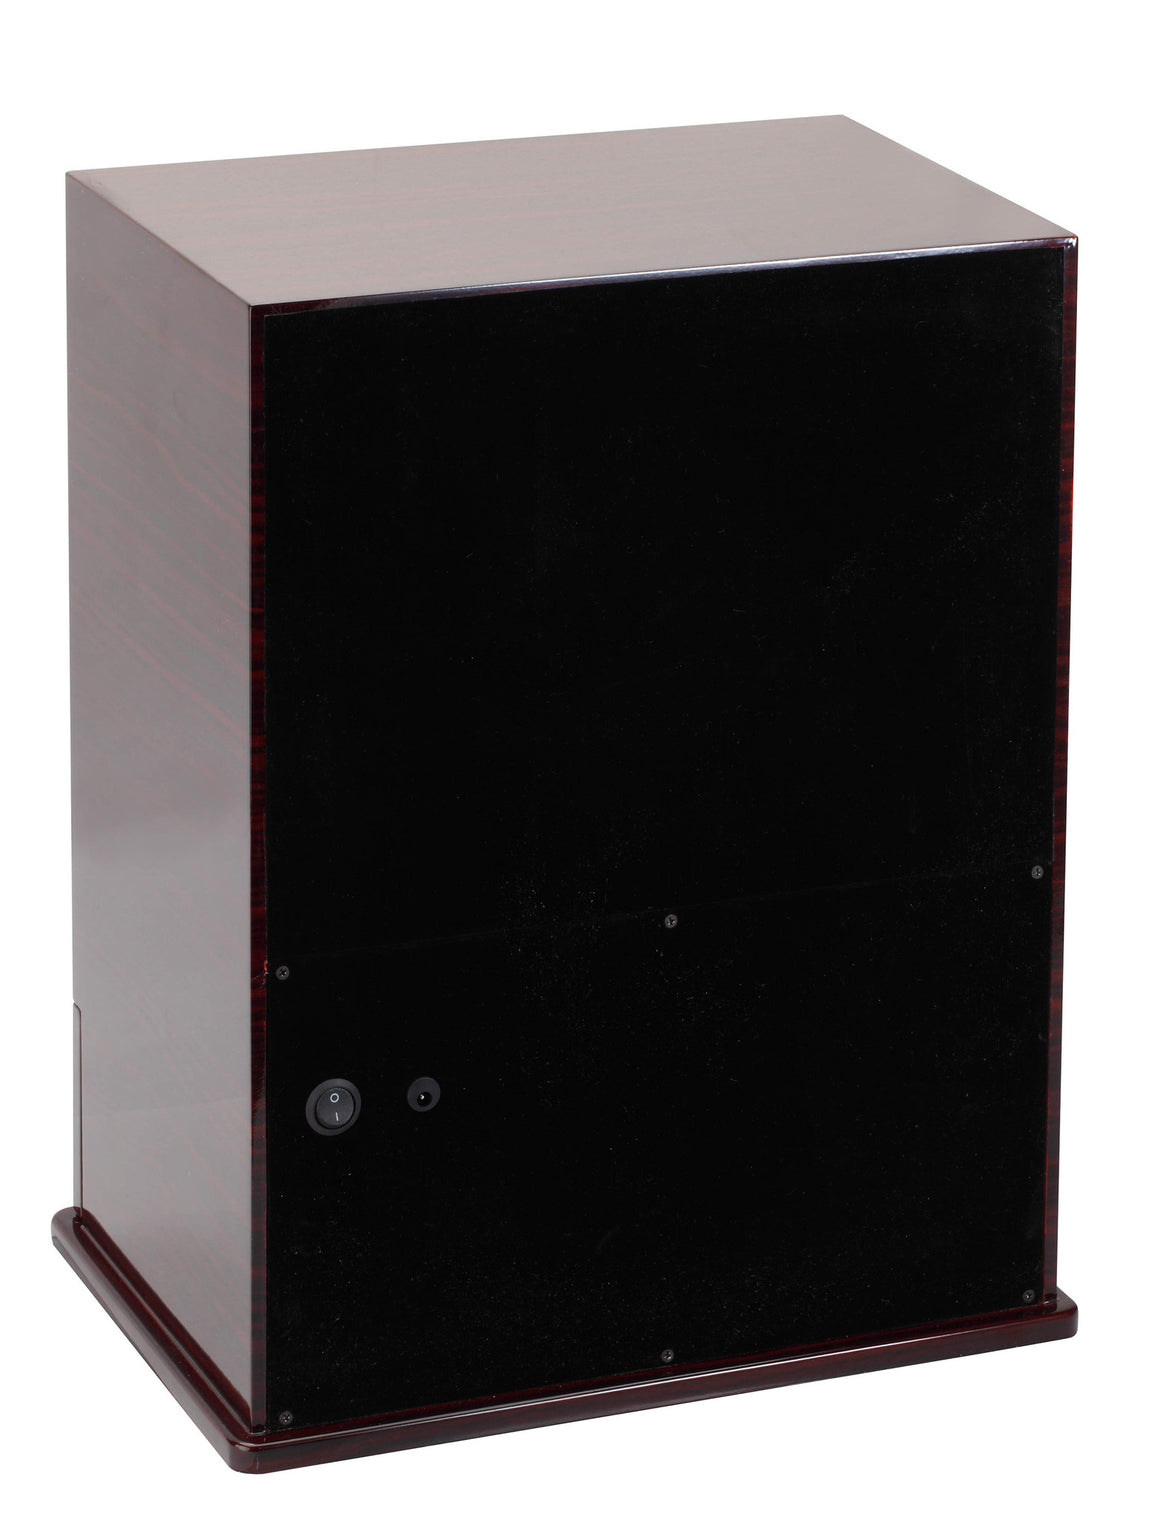 Diplomat Estate Collection Ebony Wood Nine Watch Winder - Watch Box Co. - 3